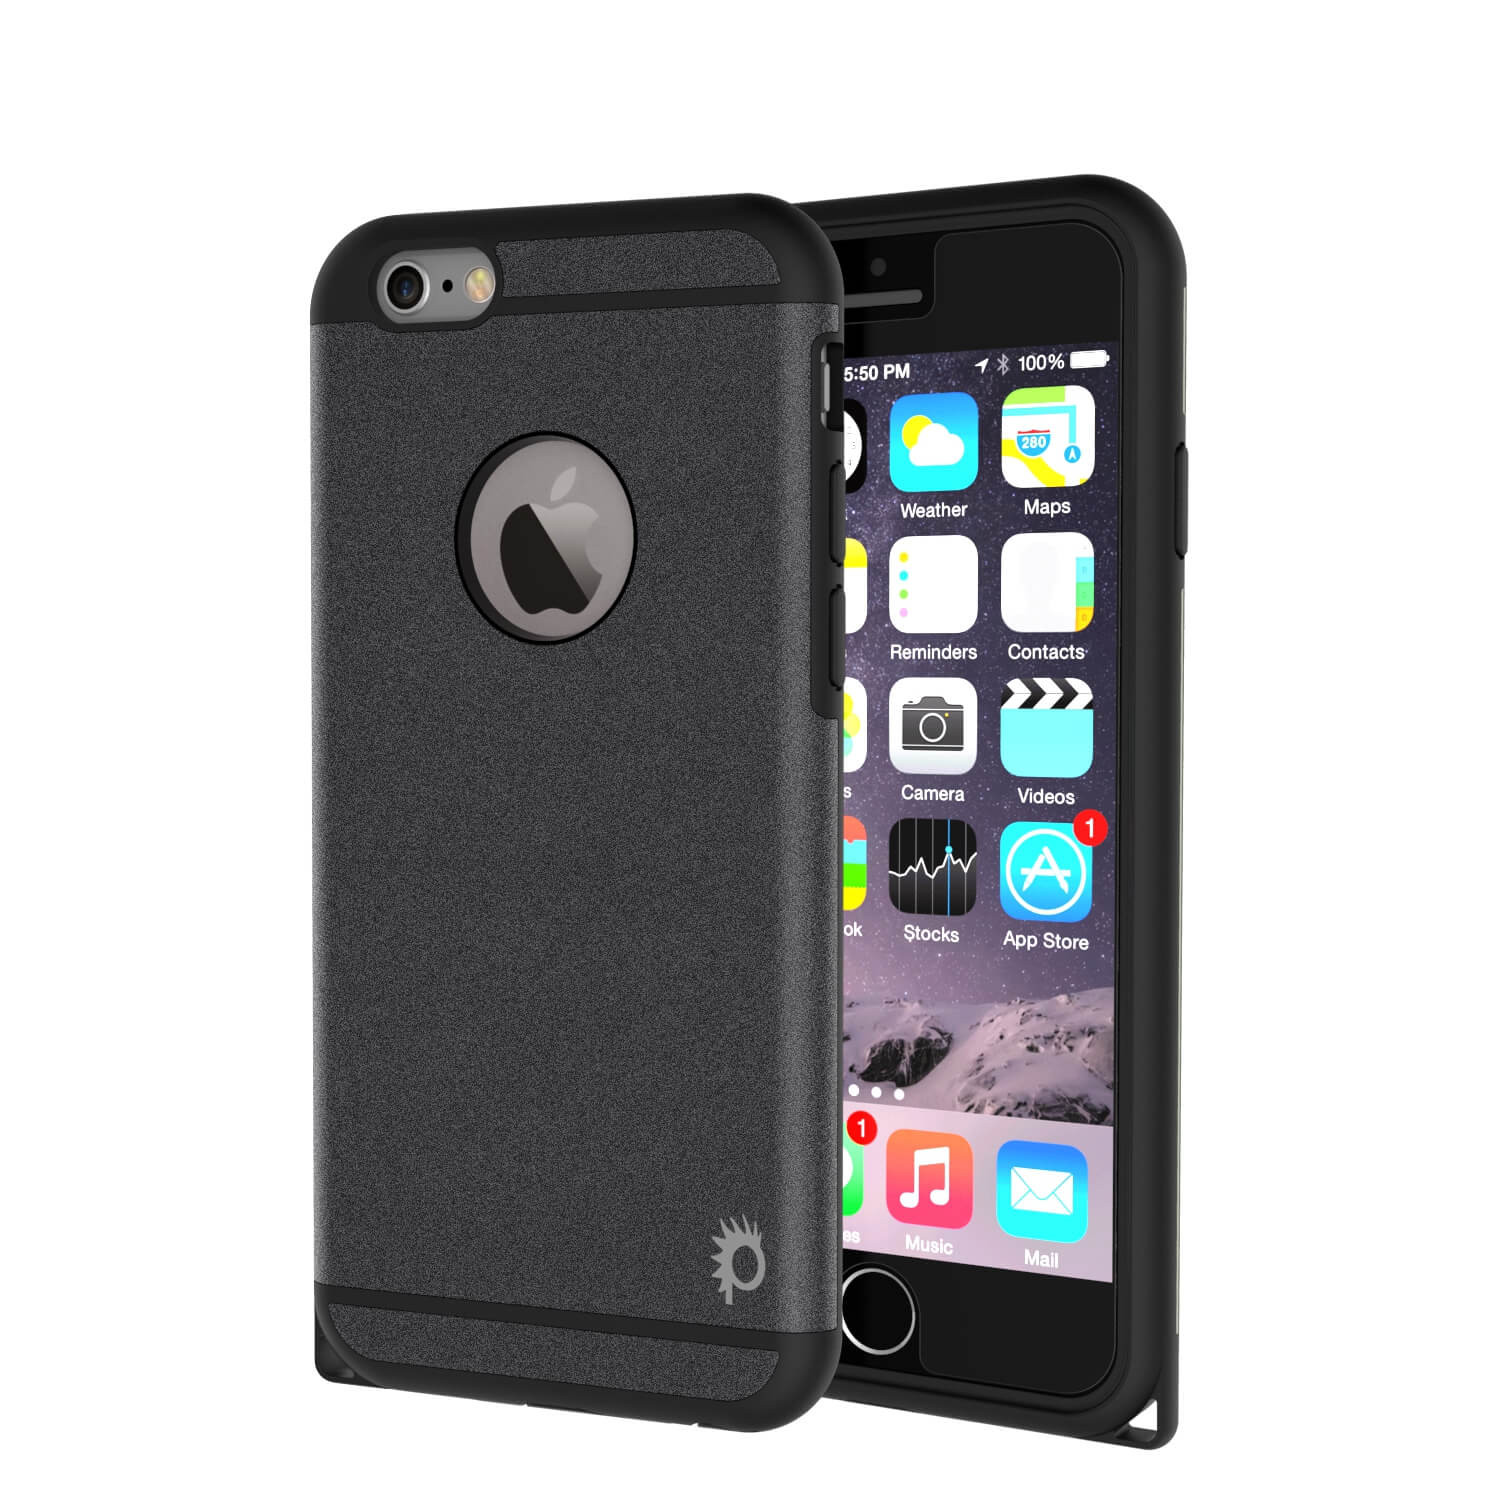 Punkcase Galactic: $9.98 for iPhone 6/6S